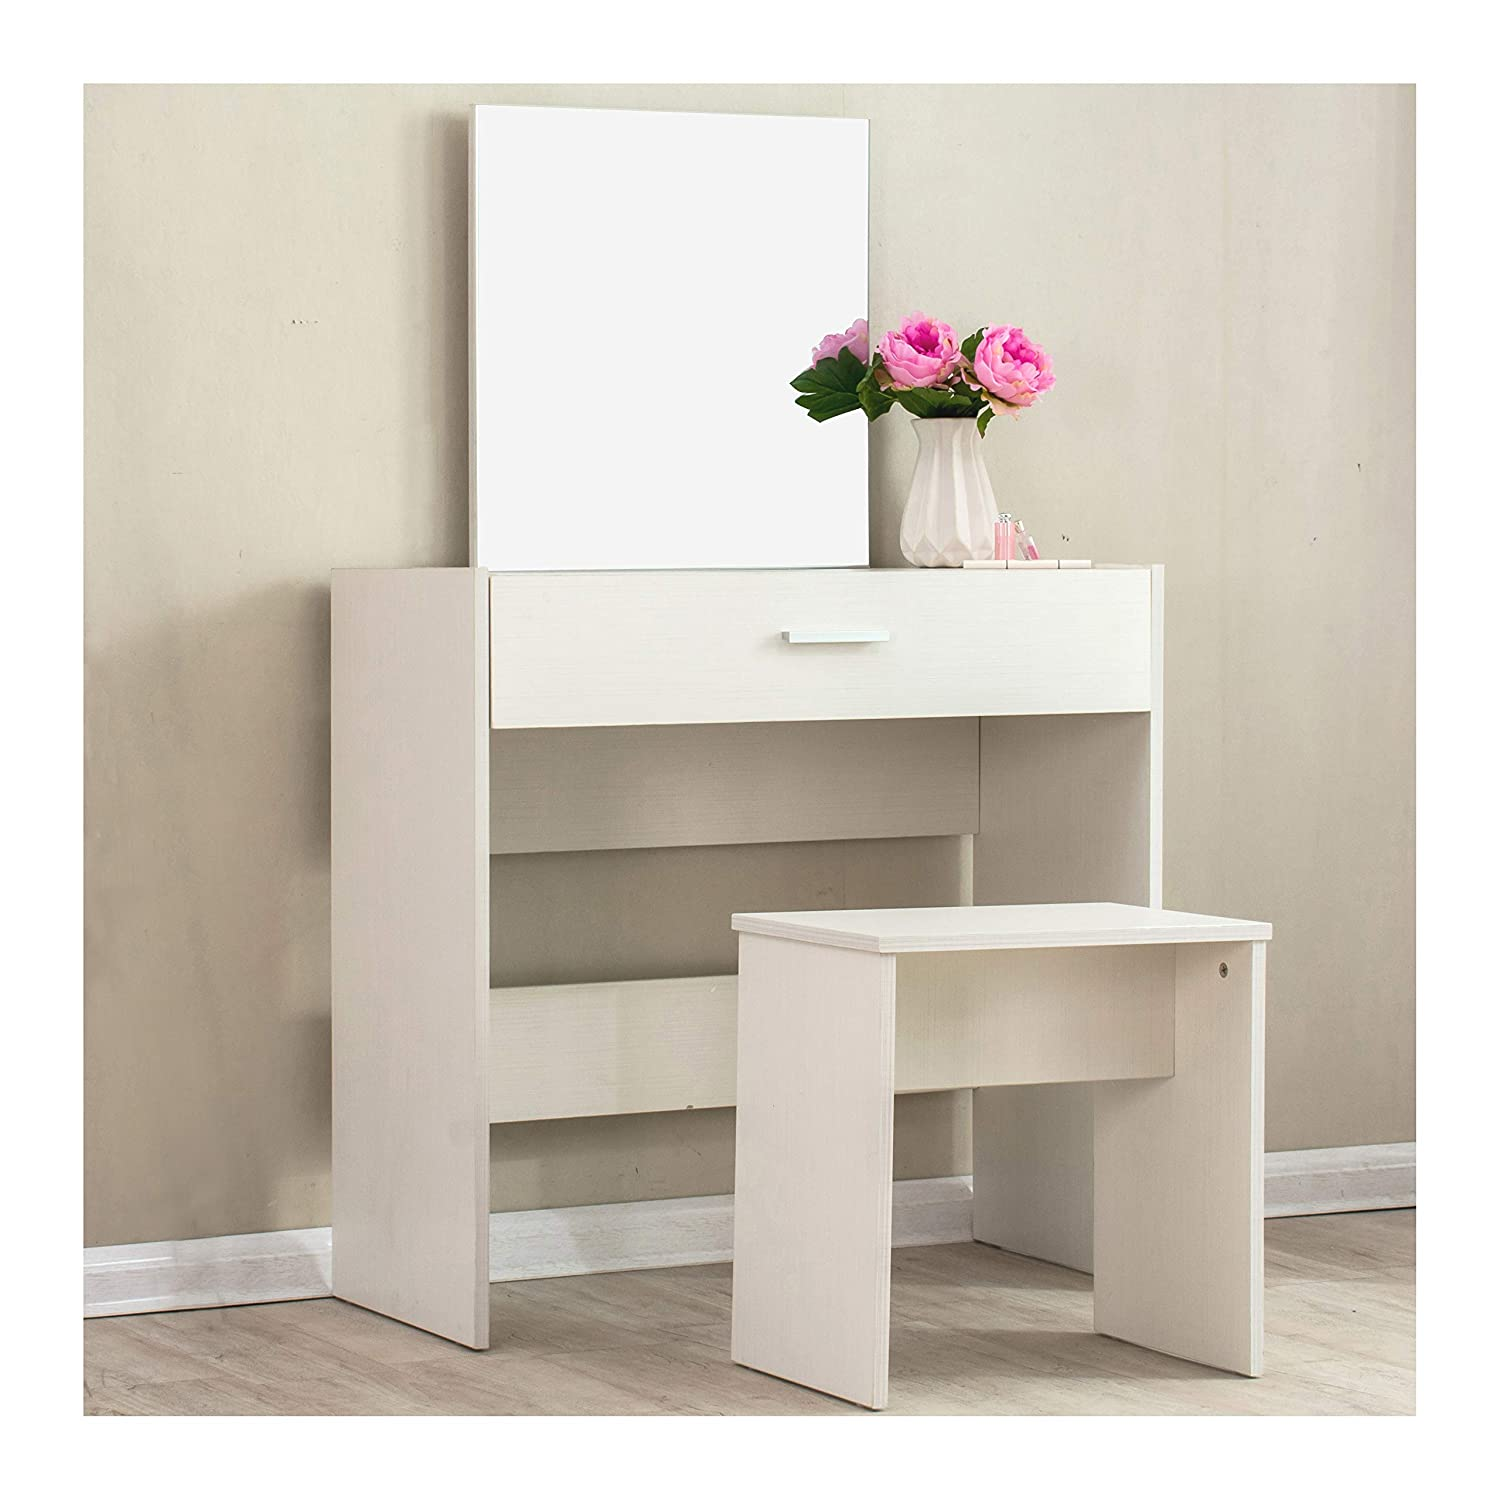 Cherry Tree Furniture Modern Design Large Mirror Vanity Dressing Table with Stool in Beige Colour